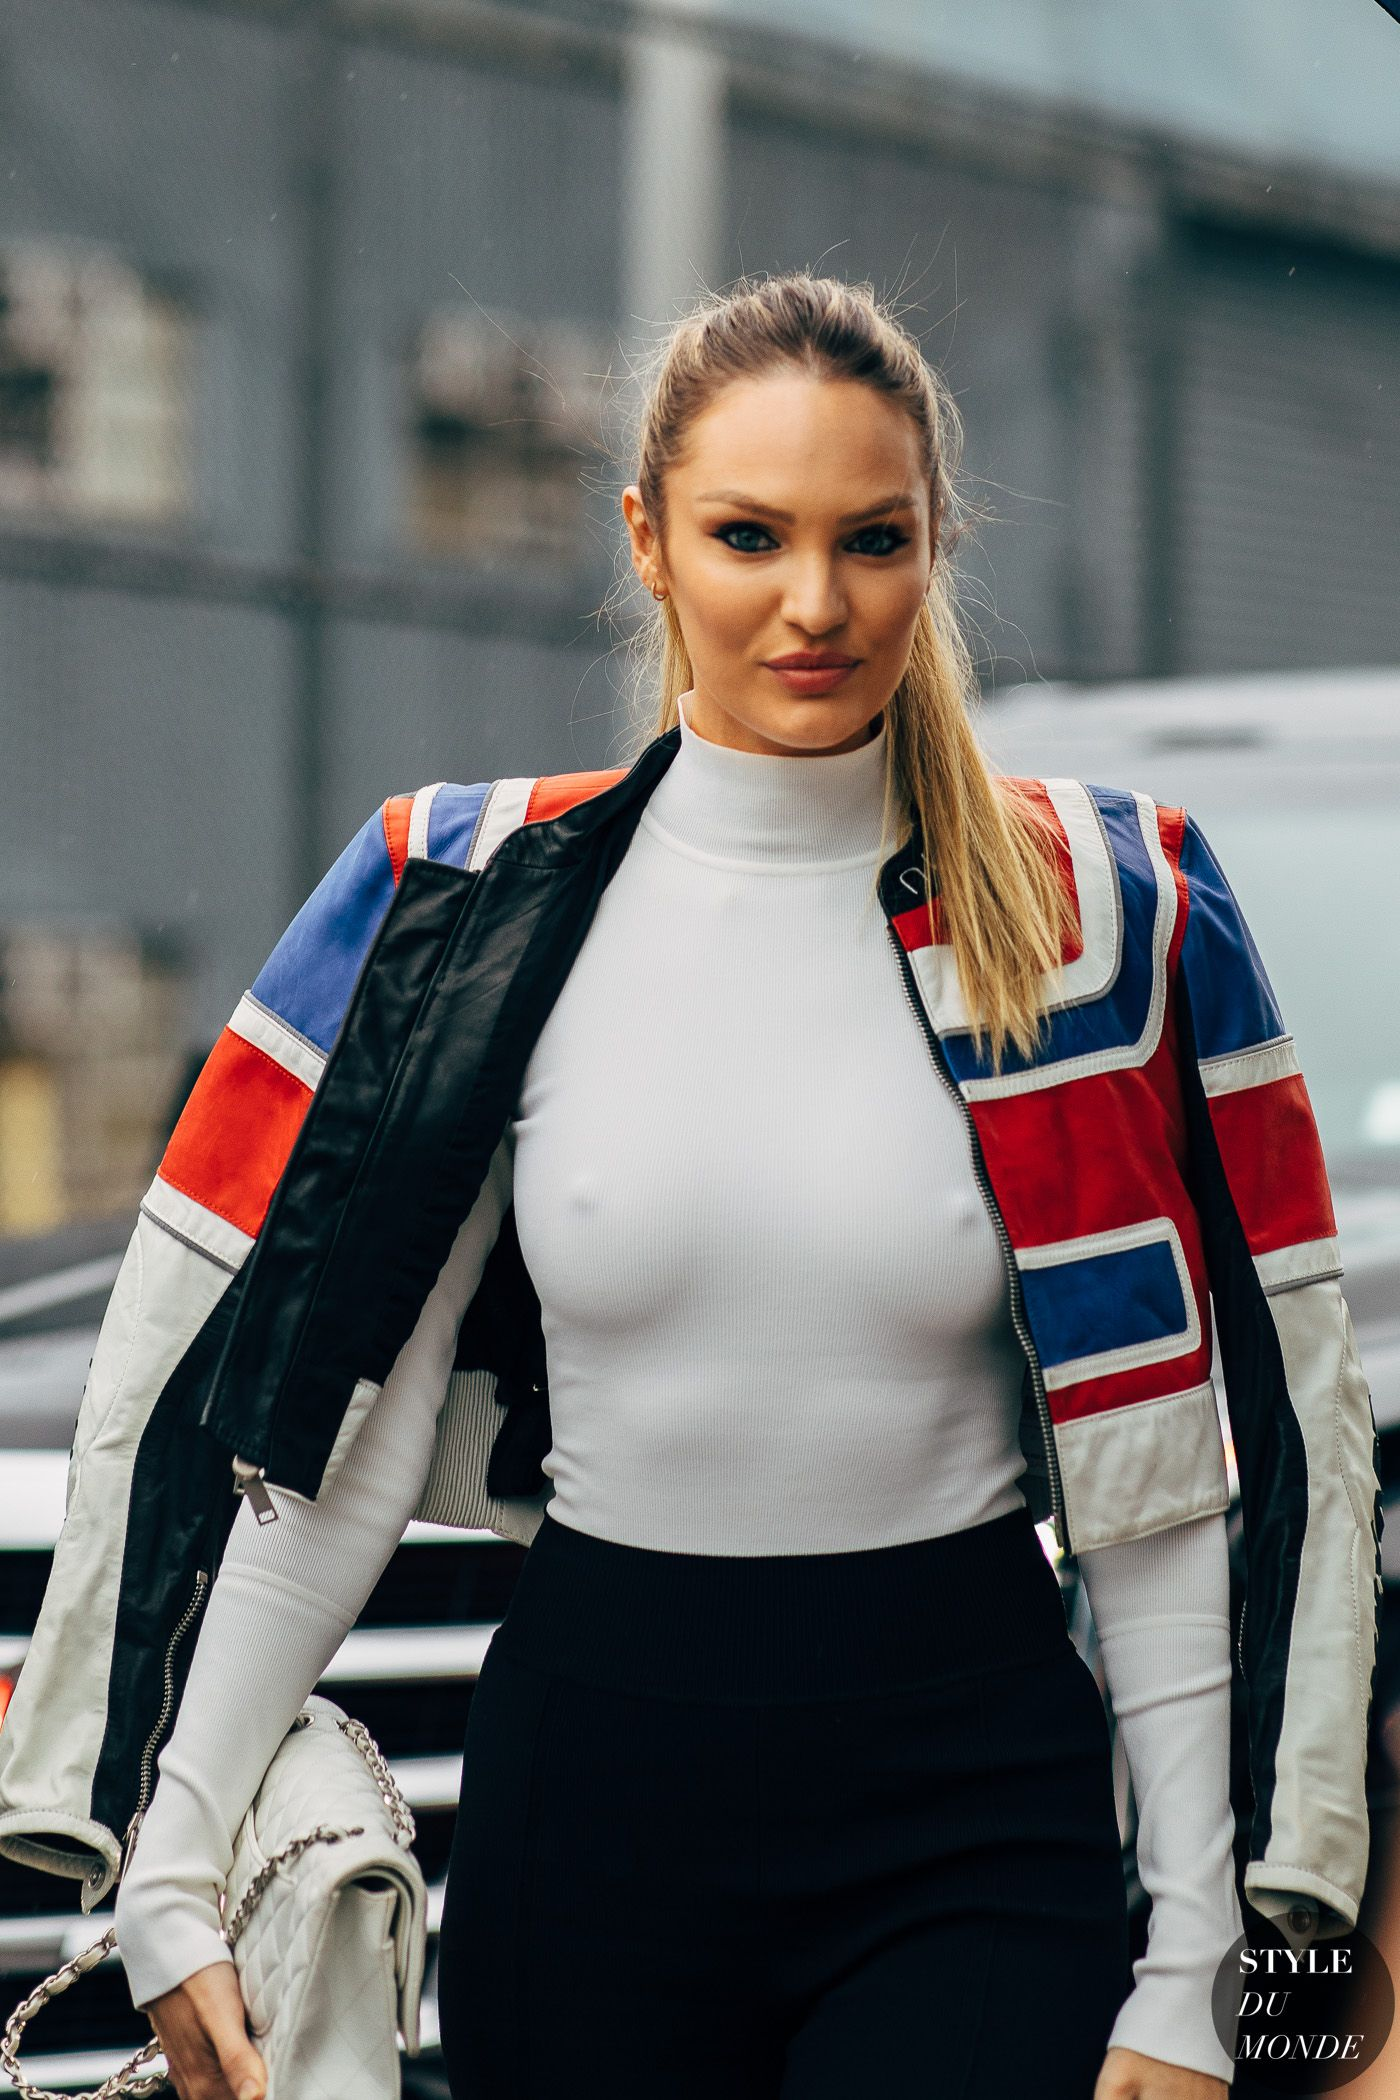 f8cd48d366a Candice Swanepoel by STYLEDUMONDE Street Style Fashion  Photography20180908 48A8041